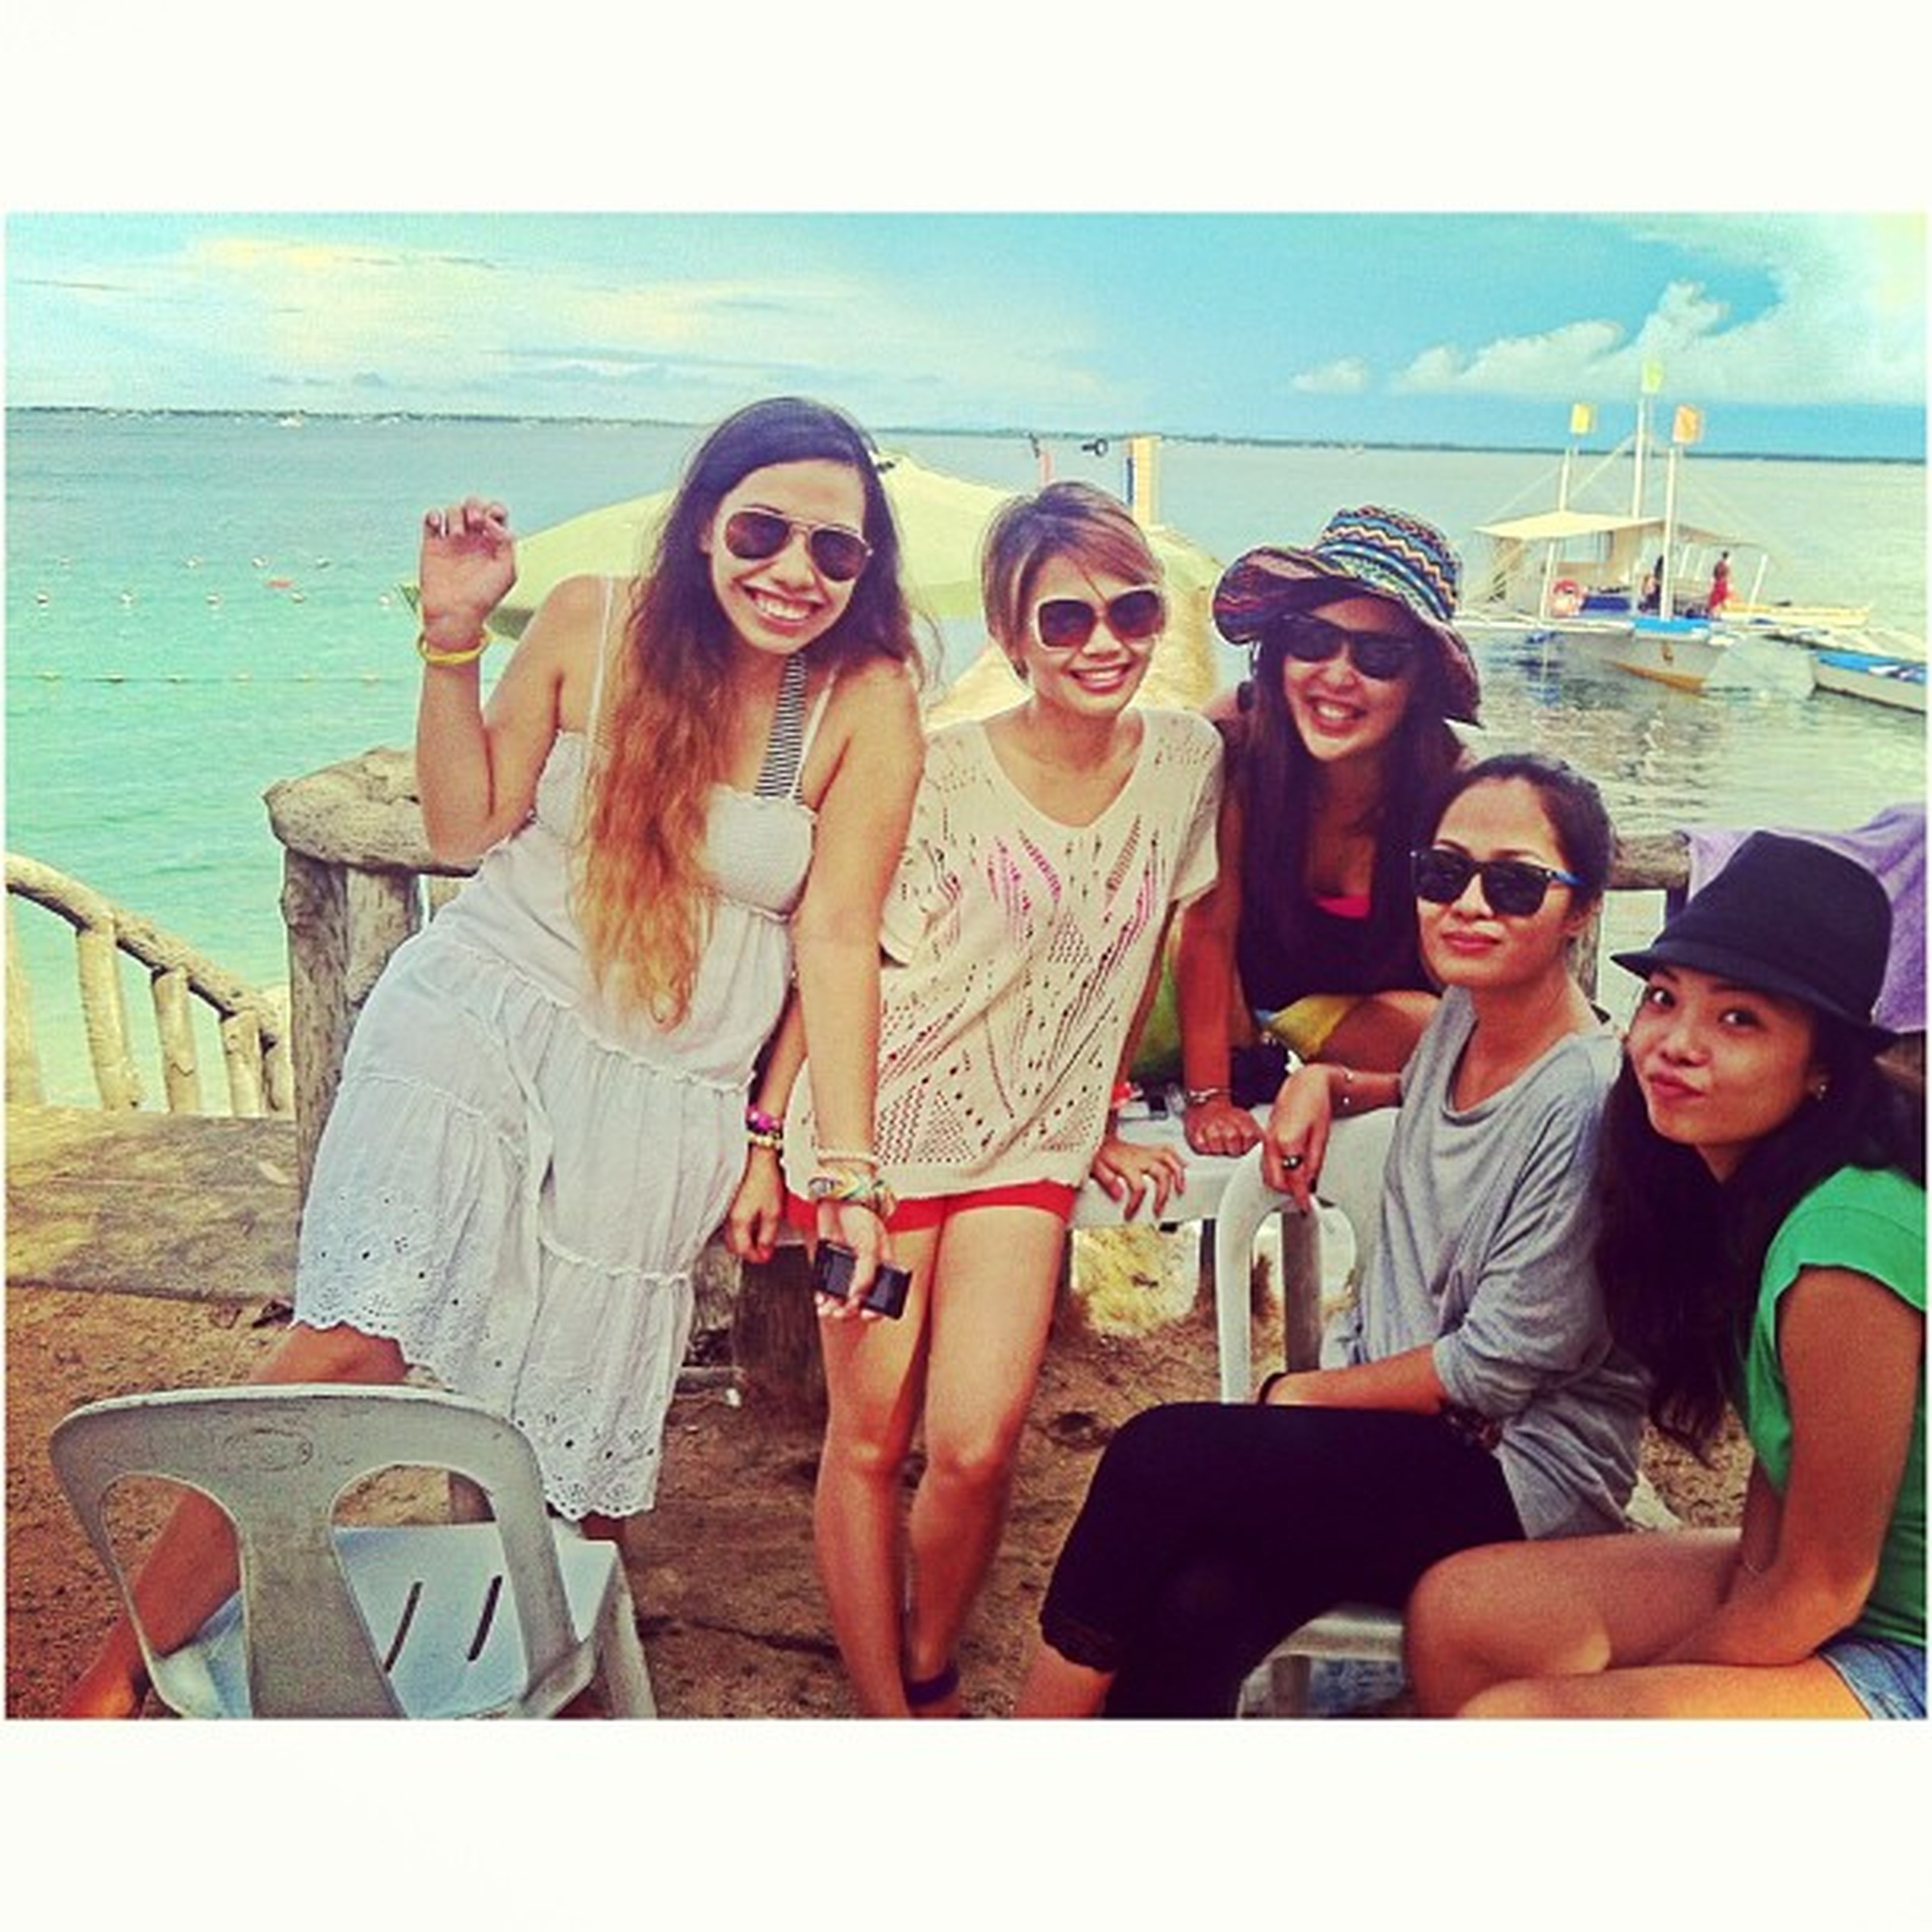 togetherness, person, lifestyles, bonding, leisure activity, love, young adult, sitting, young women, sea, water, beach, smiling, happiness, casual clothing, looking at camera, friendship